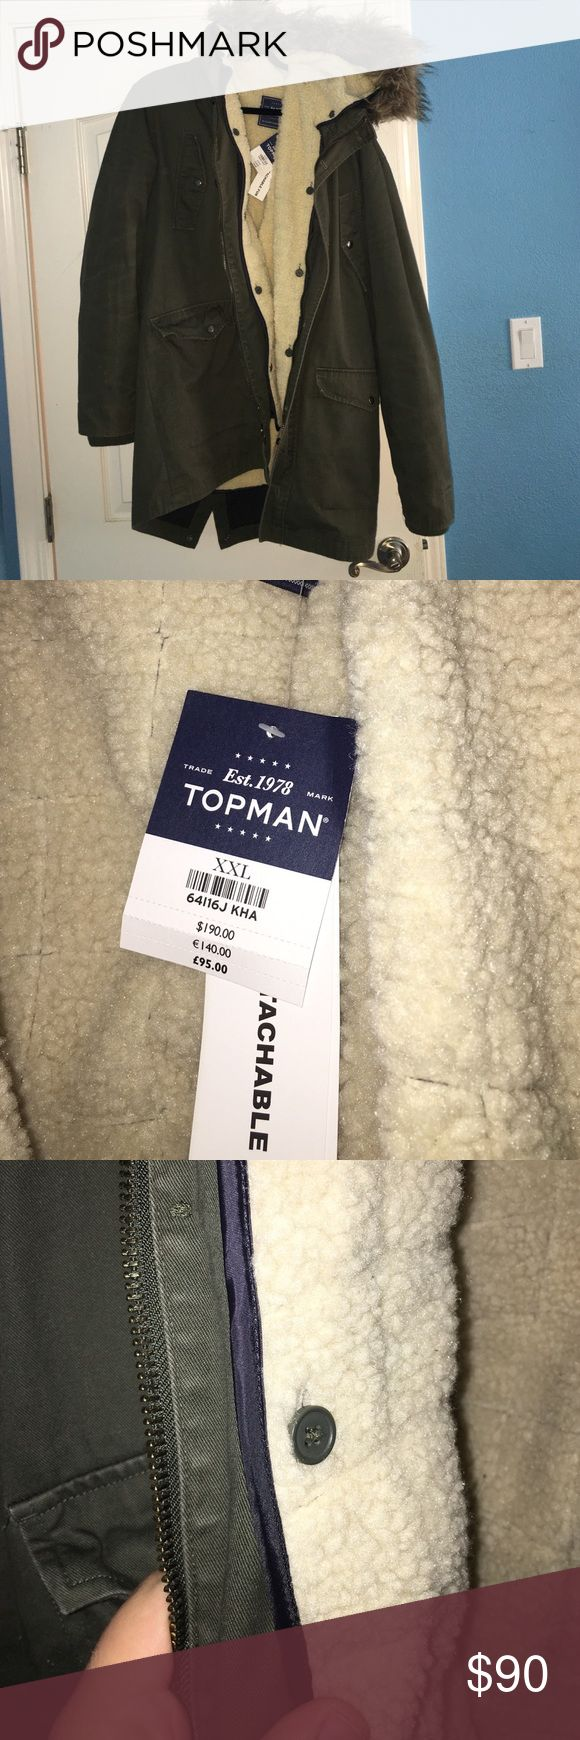 TOPMAN PARKA hardly used parka with detachable fur on hood and detachable lining (fur inside). very warm, very cozy. fits XL Topman Jackets & Coats Pea Coats